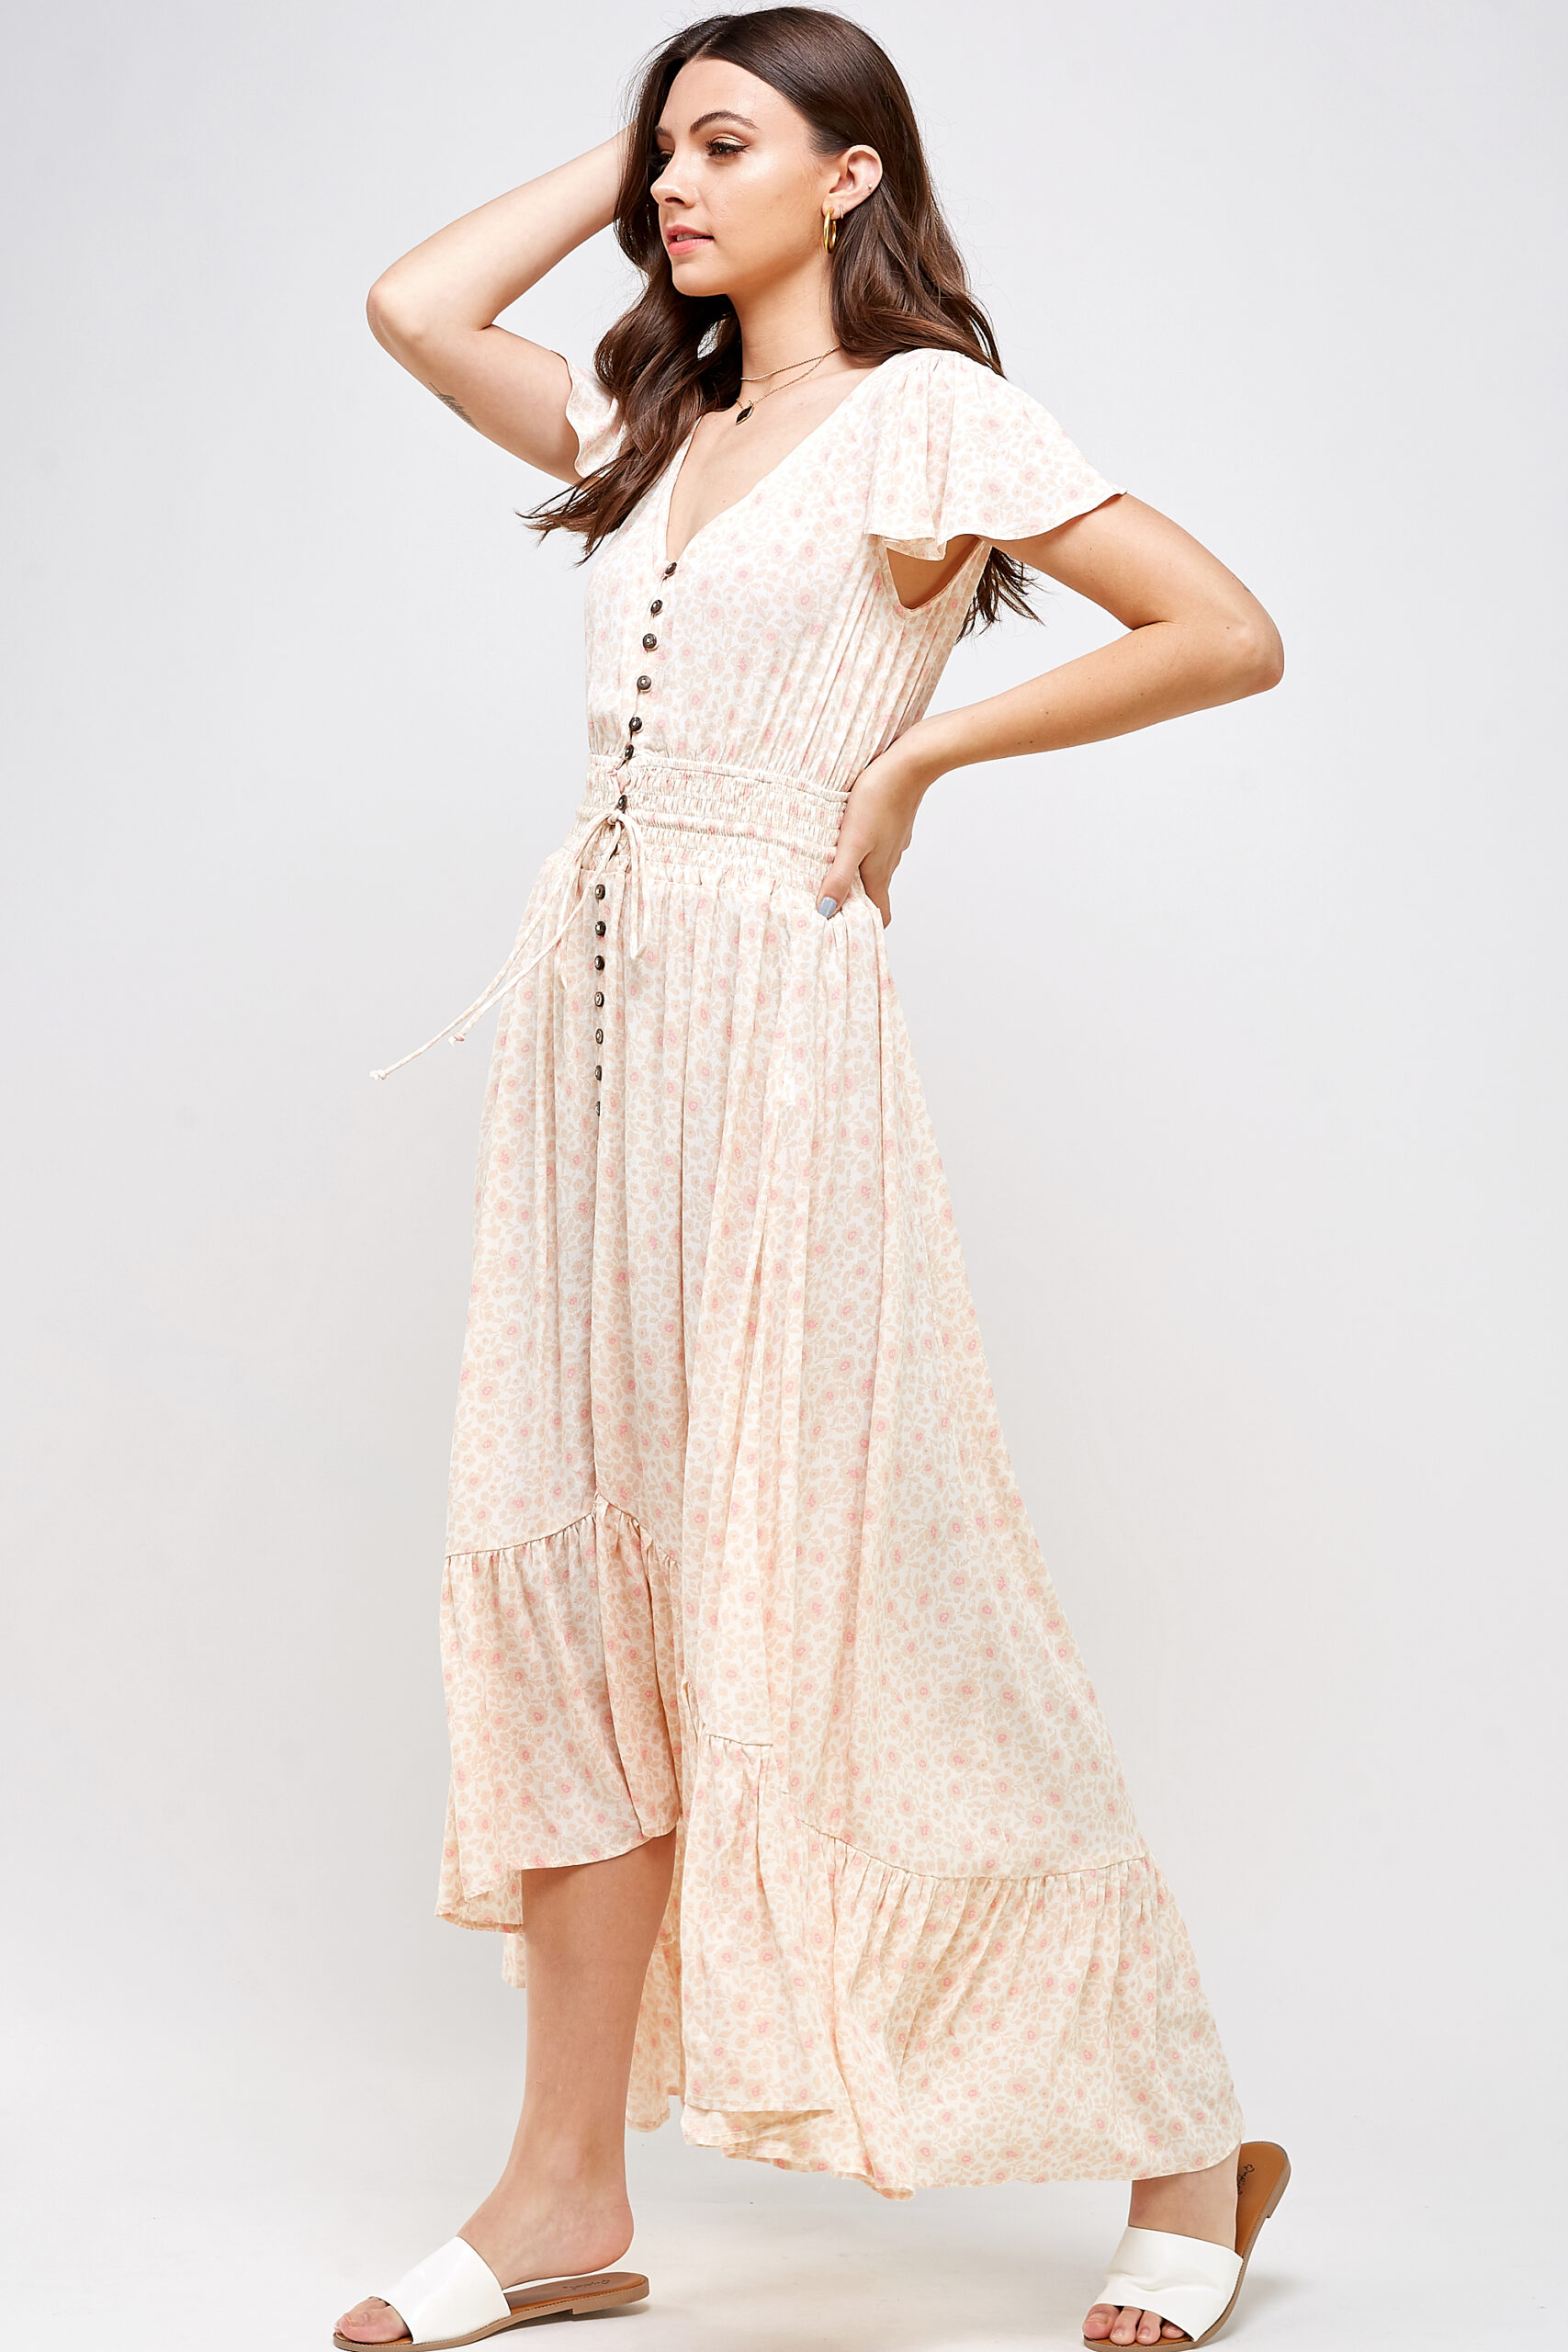 100% Rayon Flutter Sleeves Lightweight Button Front Detail High Low Hem 3/4 Front View Full